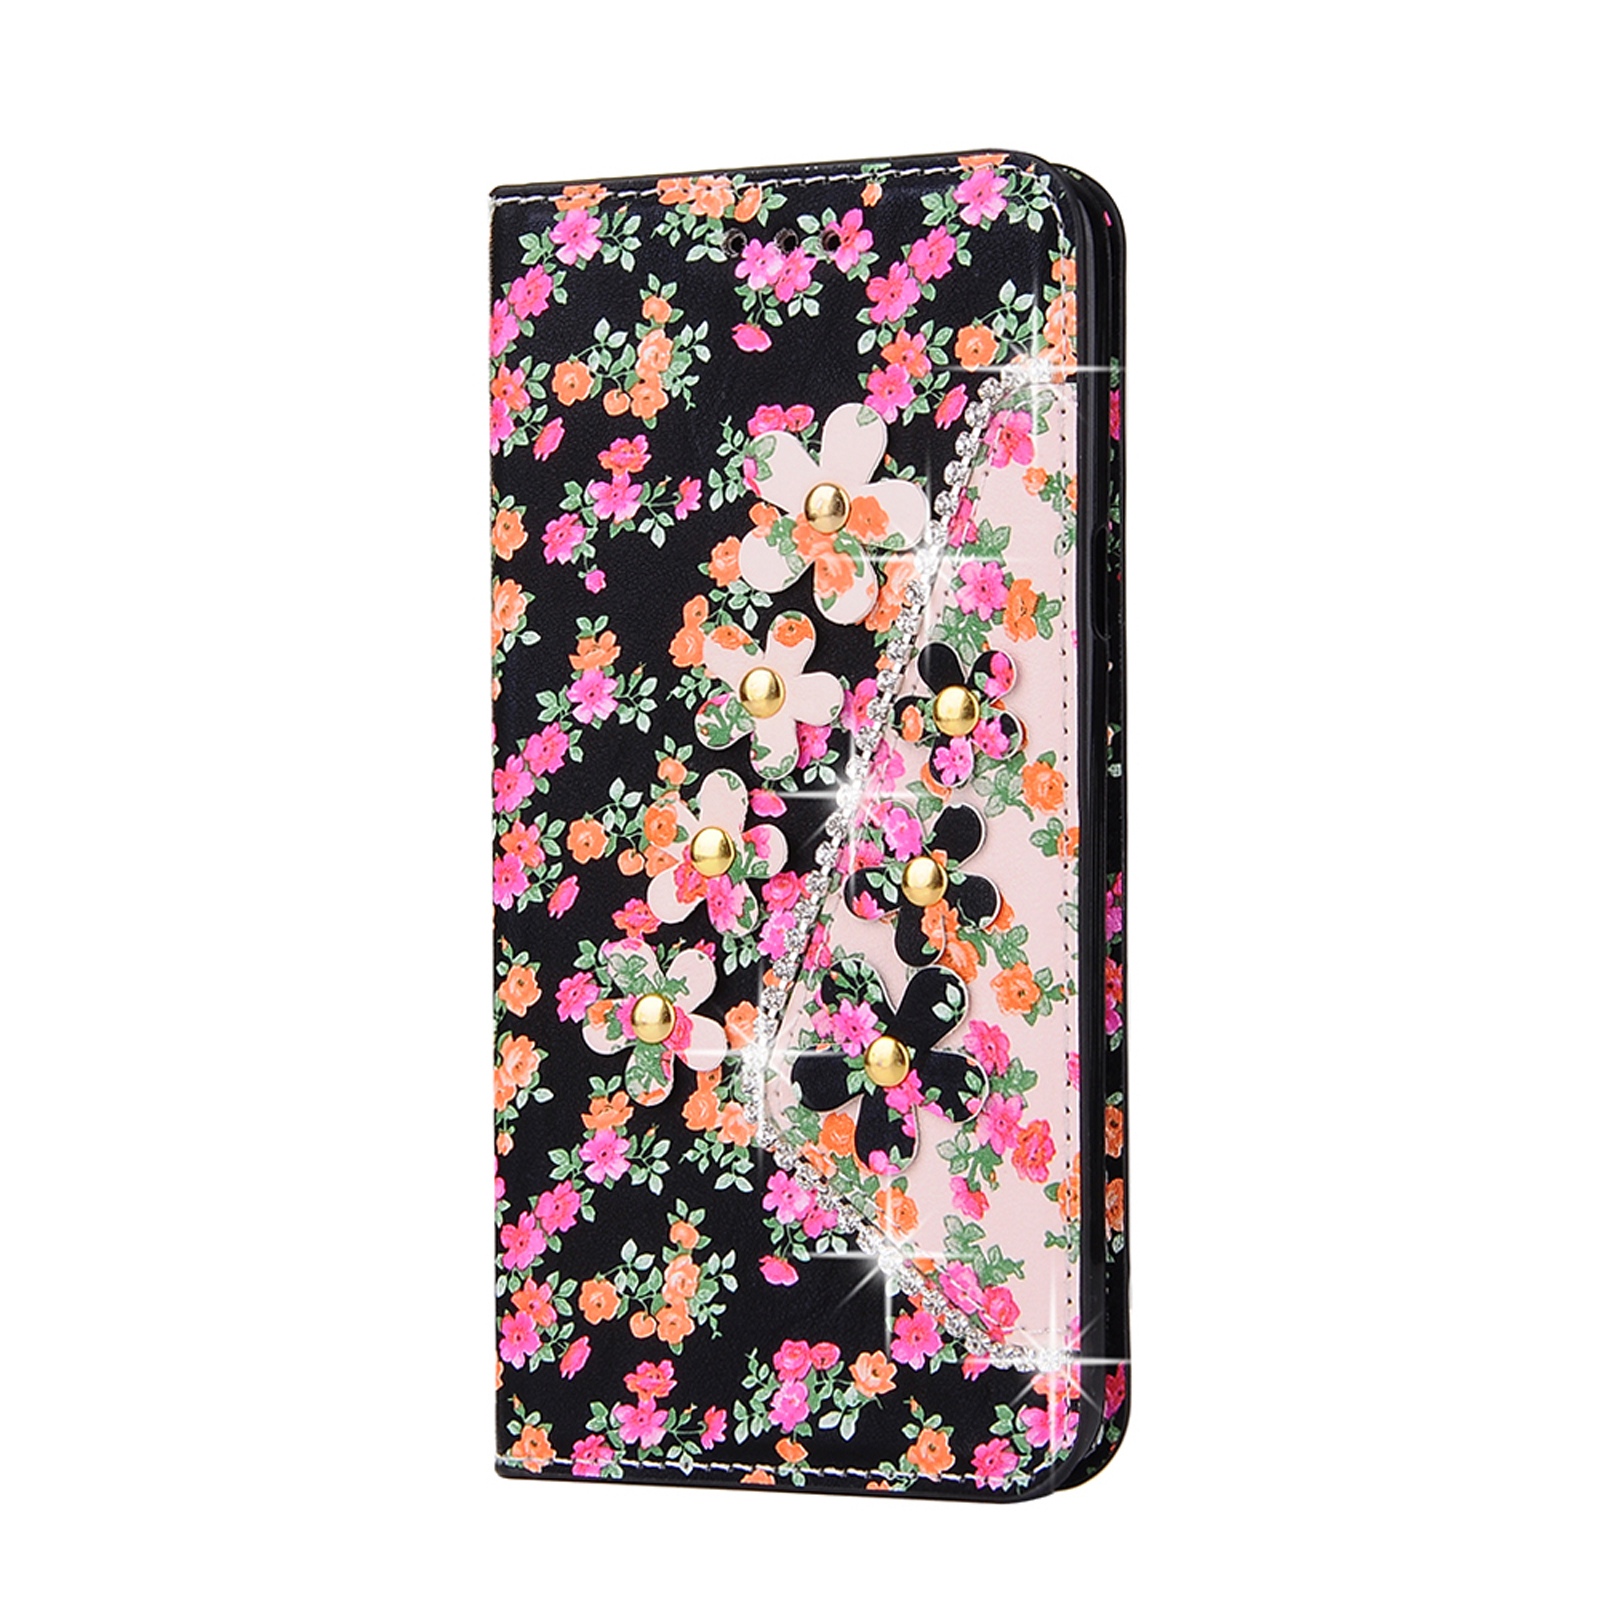 Bling Flip Leather Wallet Card Case Cover For Samsung